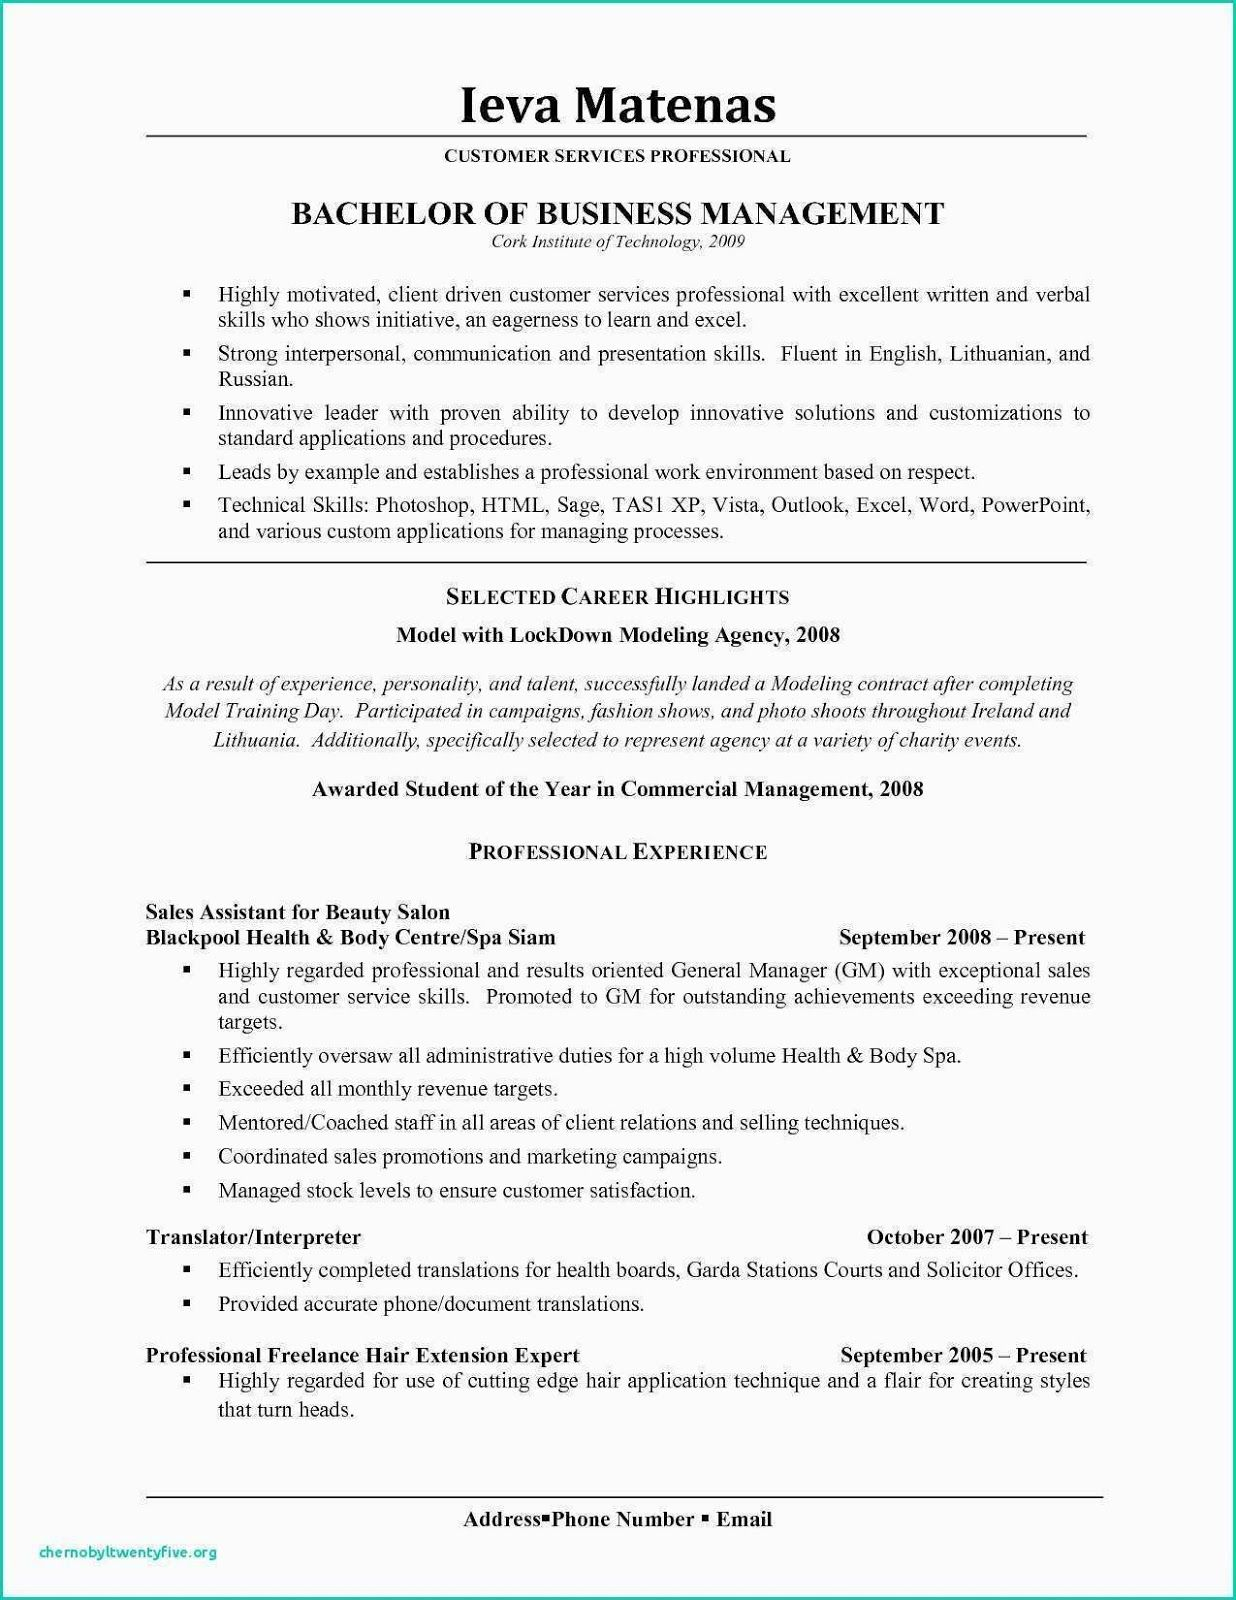 Warehouse Resume Template Free 2019 Warehouse Manager Resume Templates 2020 Warehouse Clerk Resume Te Resume Objective Examples Resume Skills Receptionist Jobs